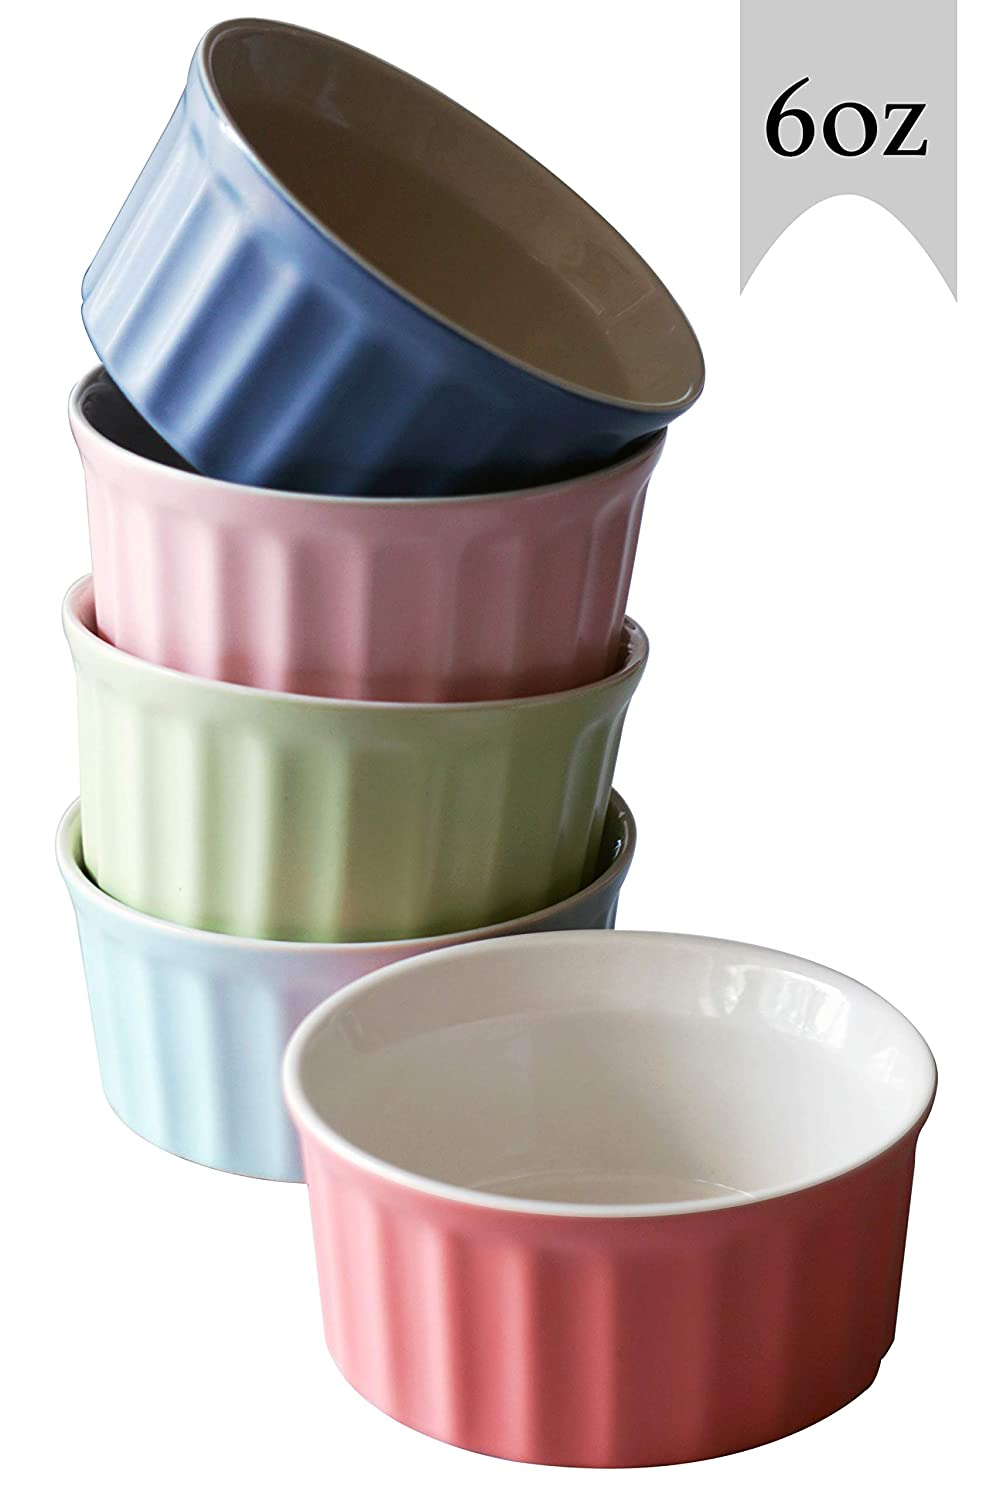 Cestash 6 Ounce Porcelain Souffle Cups - Oven Safe Ramekins for Baking - Porcelain Baking Dish For Soufflé, Creme Brulee and Ice Cream - Colorful Souffle Dishes (Set of 5)